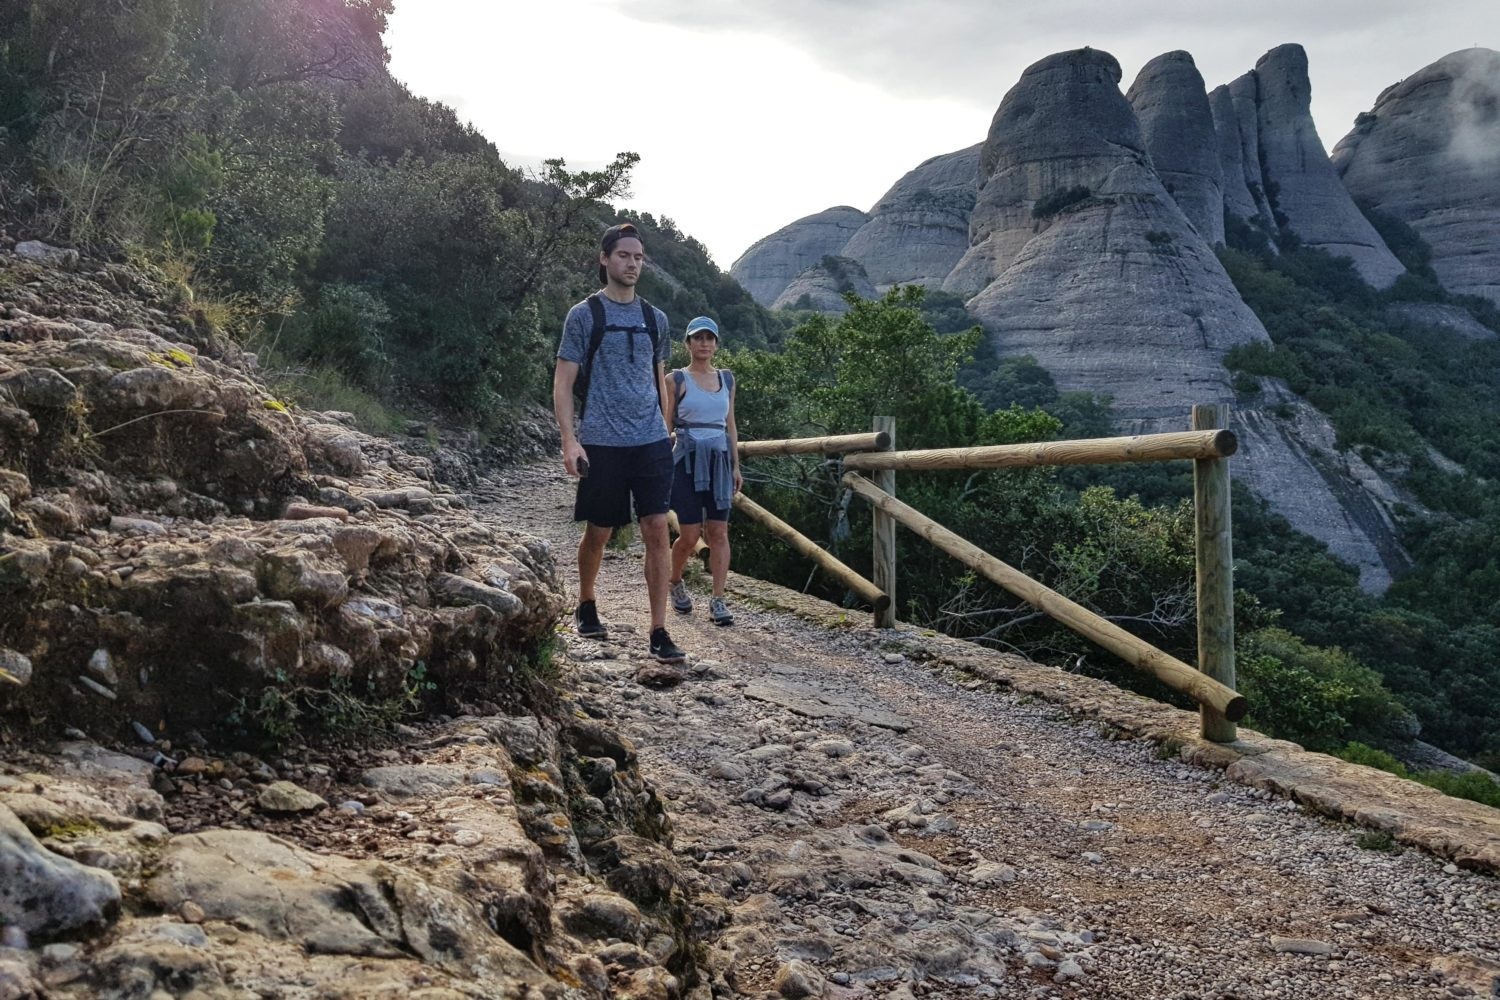 Visit the Montserrat Mountain for a gentle hike and learn about Mediterranean vegetation.